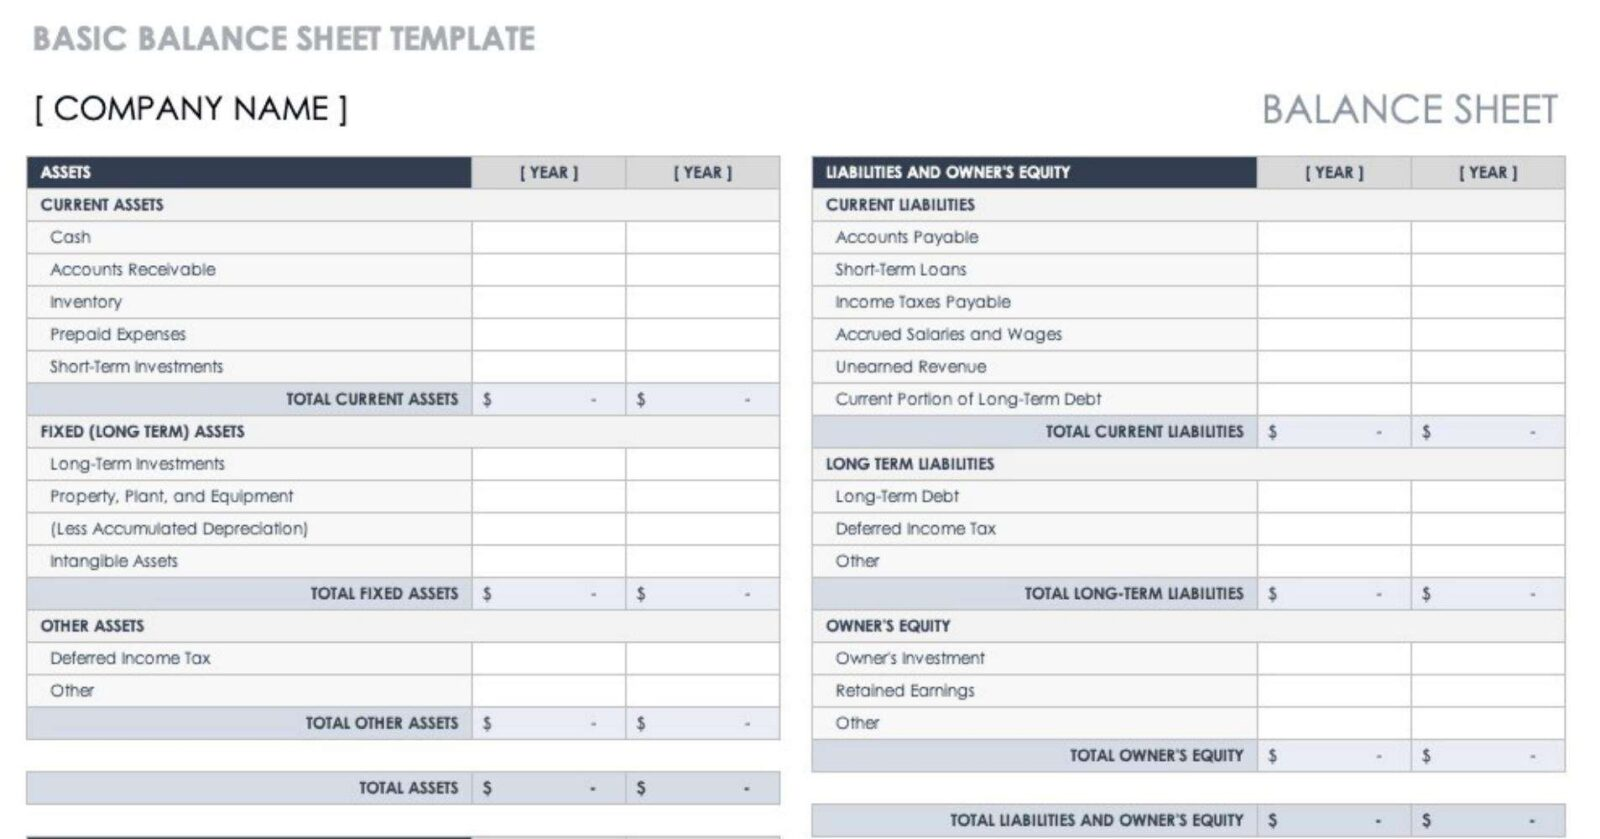 Balance Sheet Template and Brief Explanation